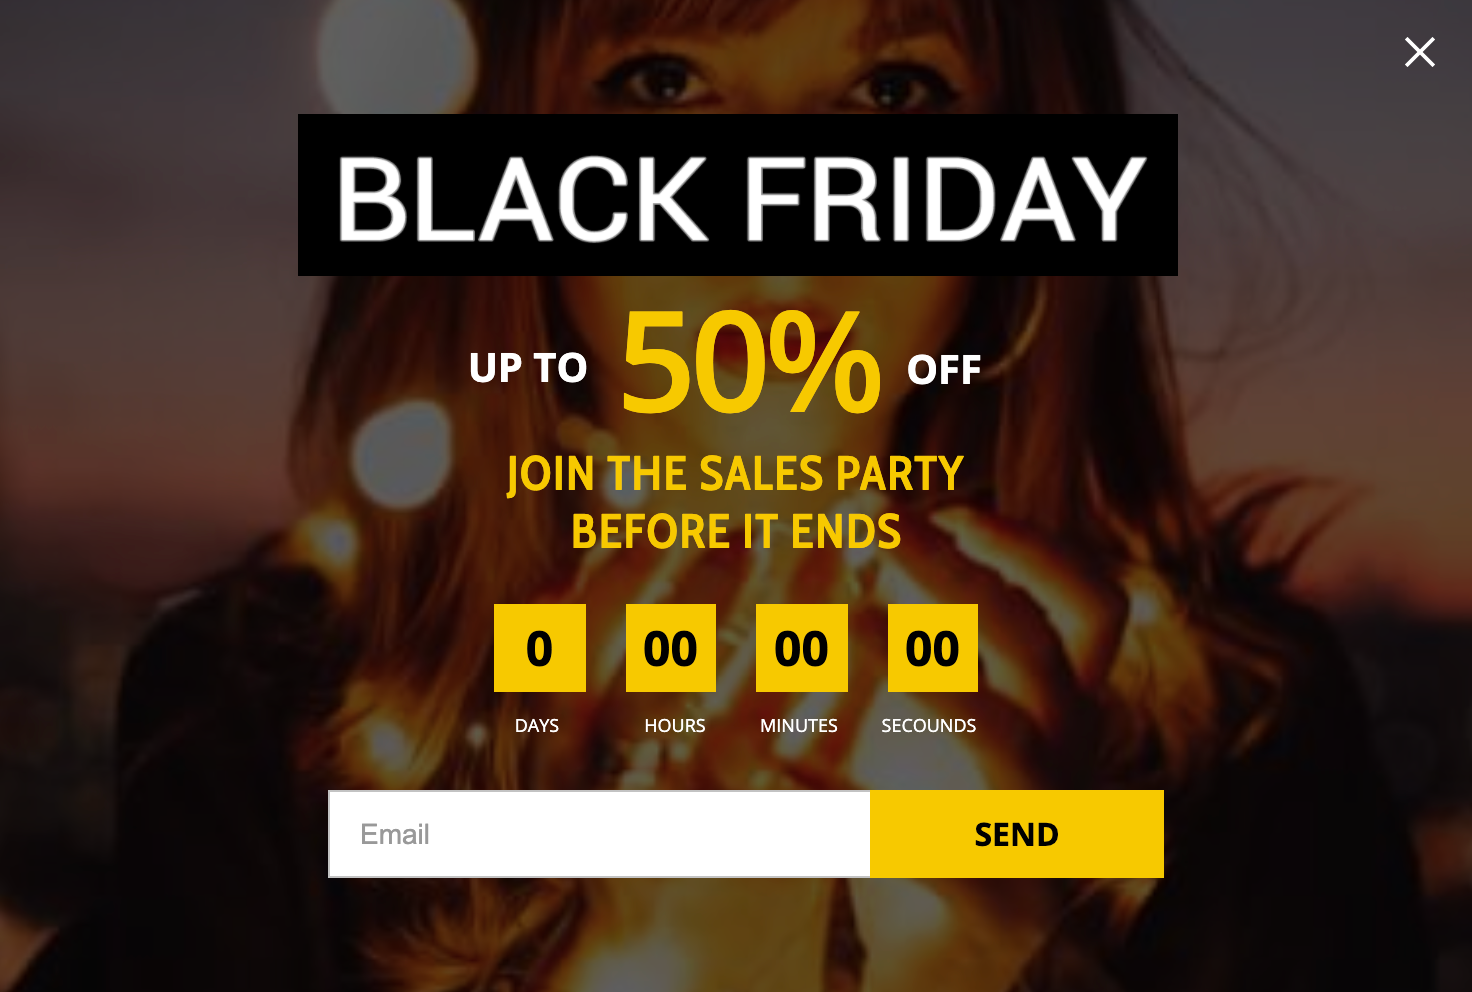 Black Friday sales promotion popup with a countdown timer